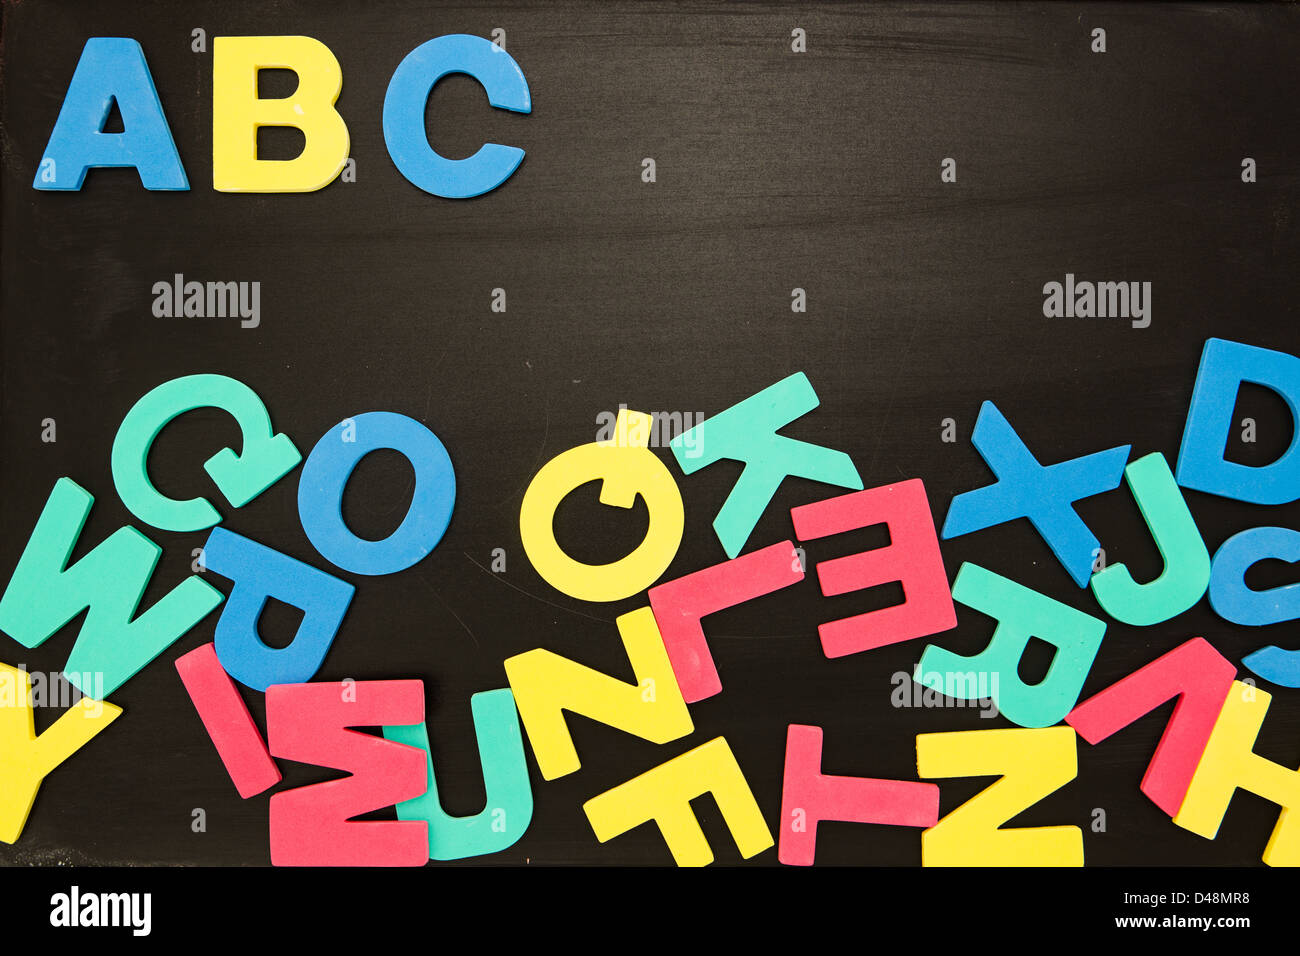 Alphabet magnets in a jumble on blackboard with Abc in order - Stock Image